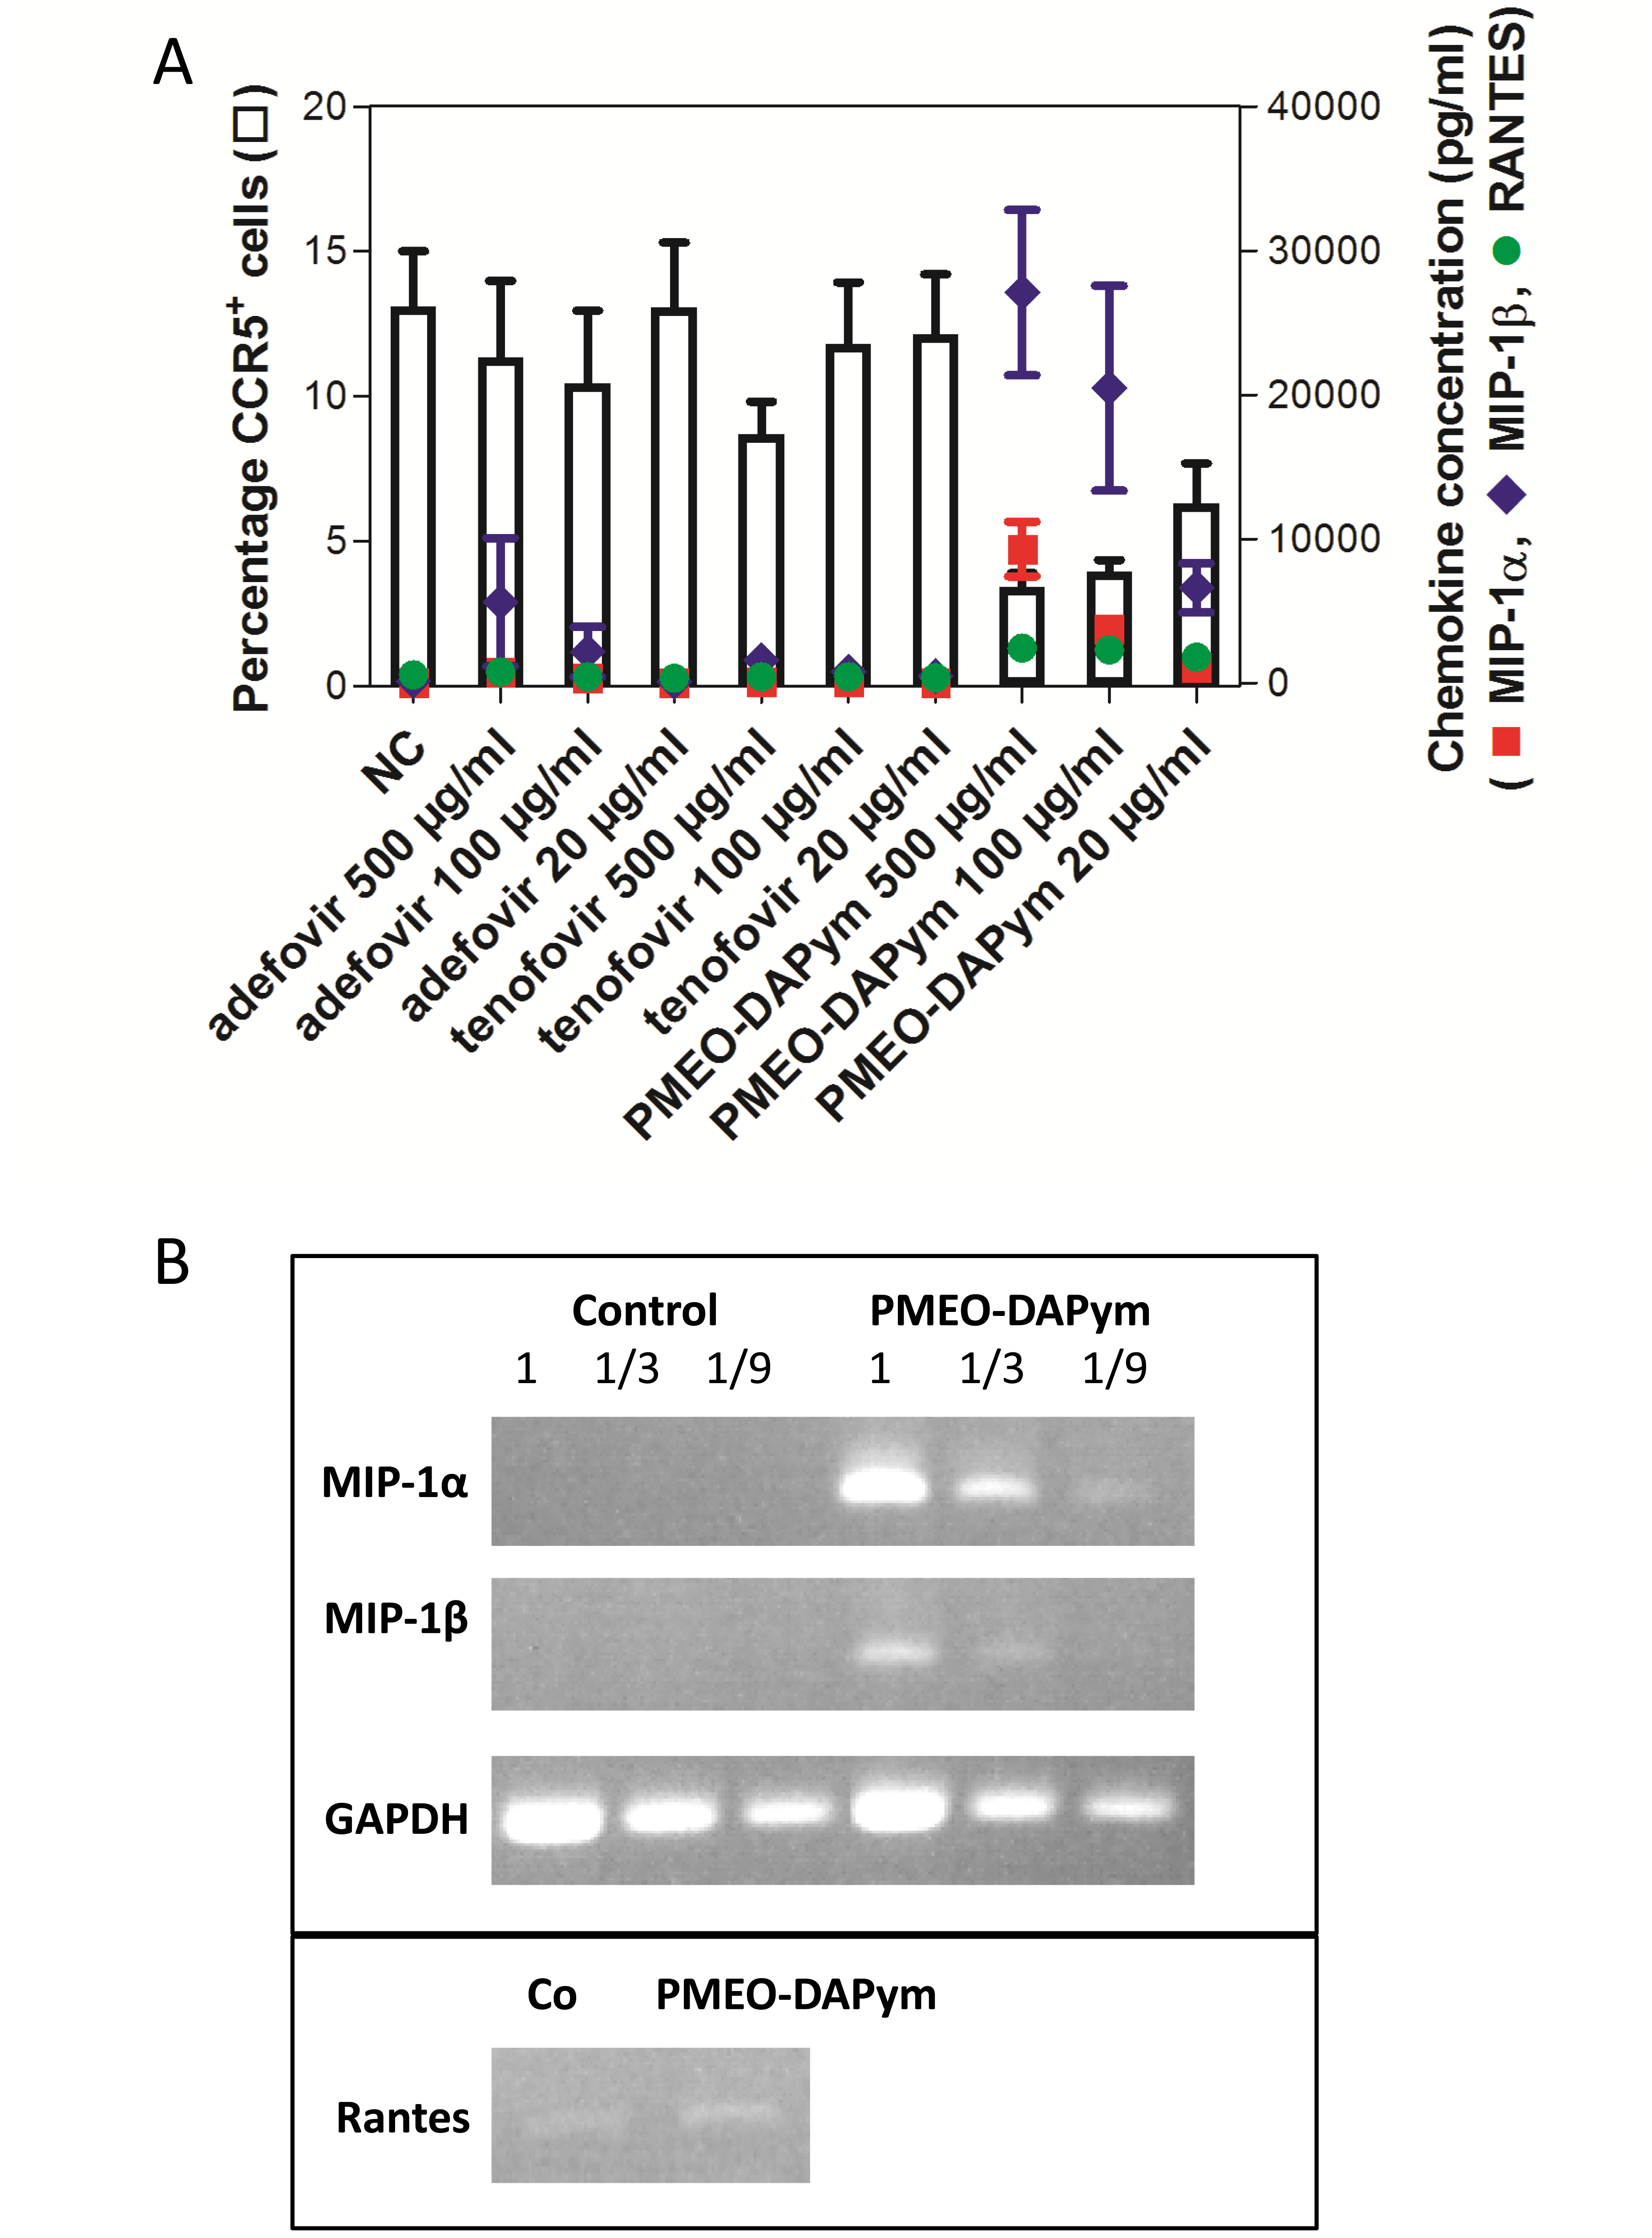 Expression of CC-chemokines, CCR5 and chemokine mRNA expression in PBMC cultures after drug treatment.